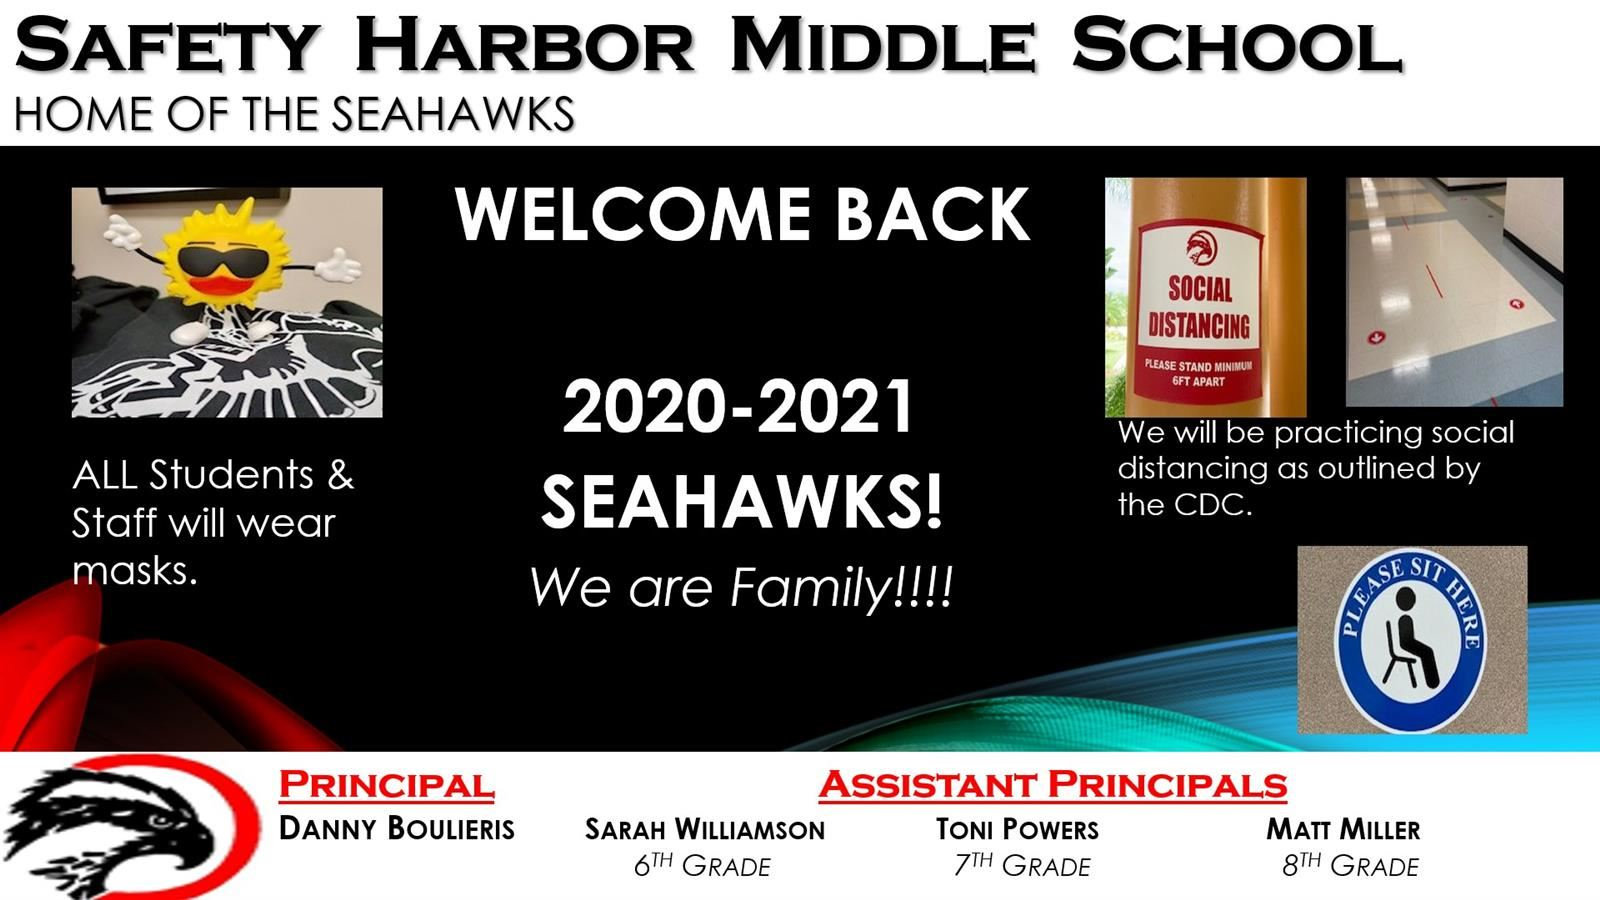 Hello Seahawk Families! Let's Get Ready for Our First Day Of School!